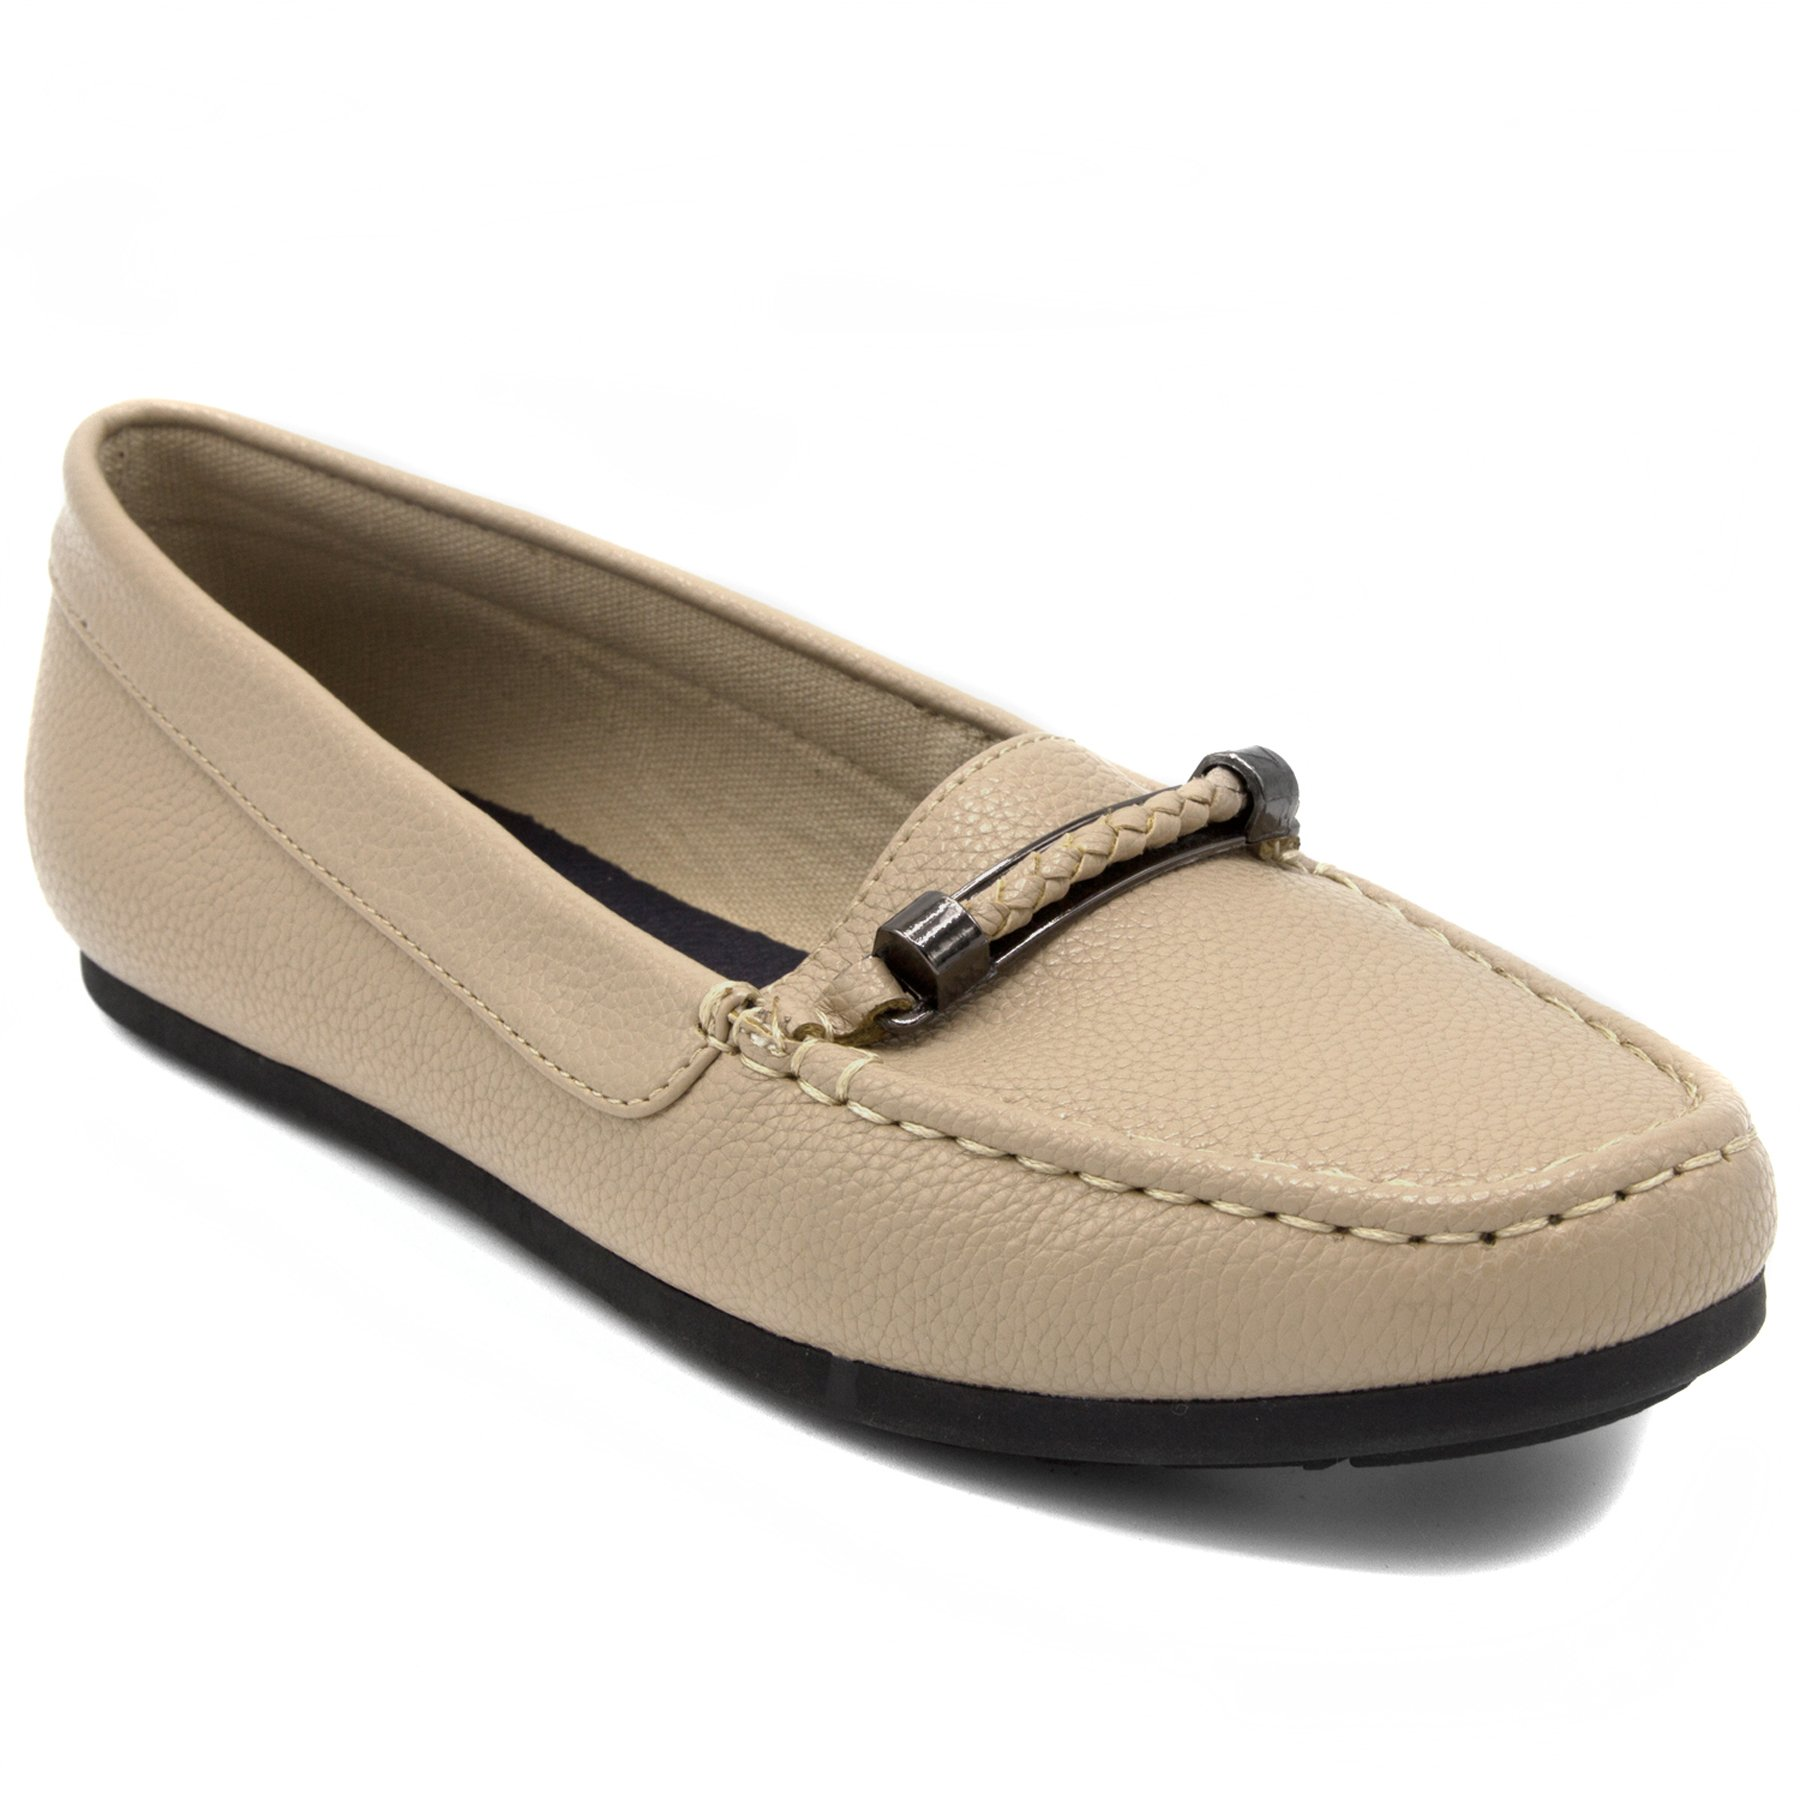 Nautica Women's Beckington Loafer with Braided Buckle Fashion Shoe Taupe Tumbled-9.5 by Nautica